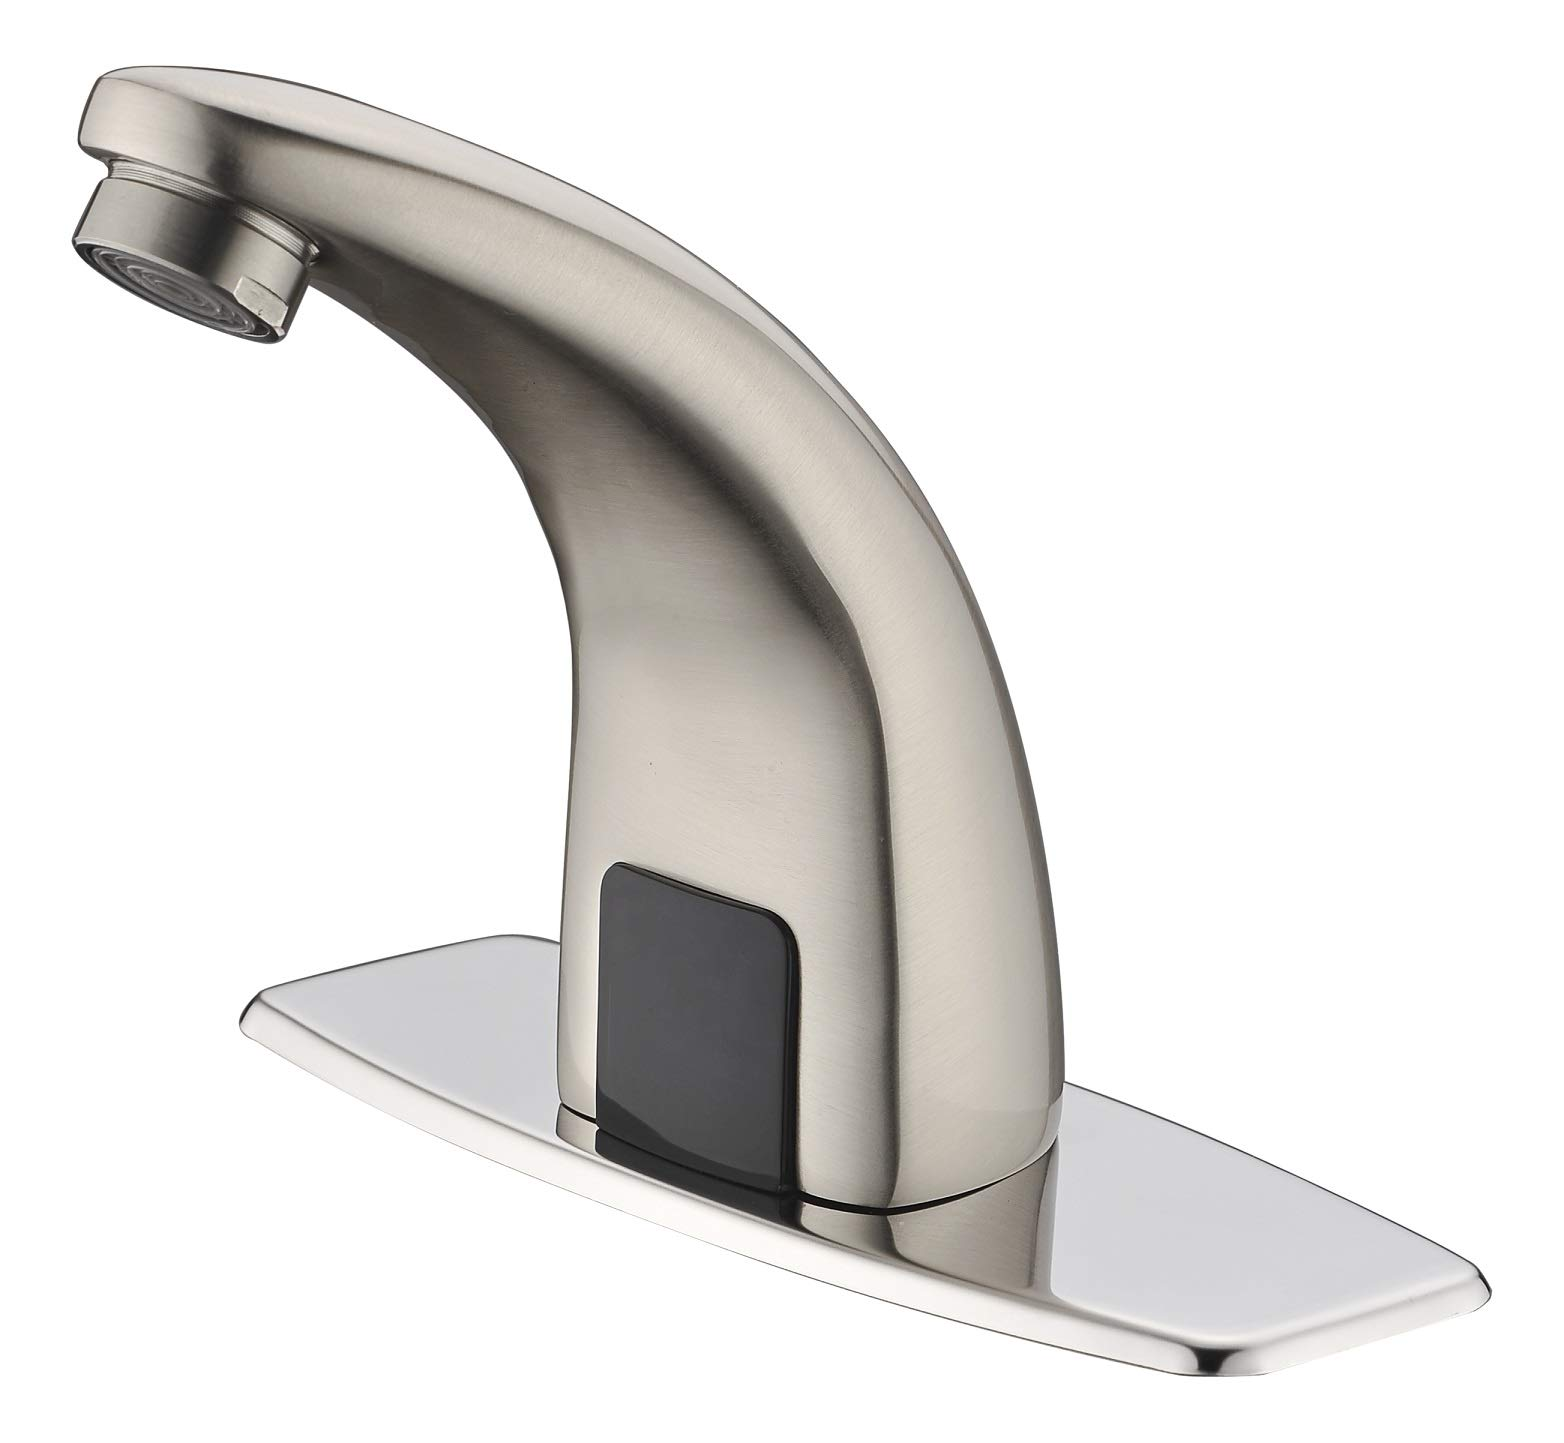 Gangang Lead Free Automatic Sensor Faucet Cold and Hot Single Handle Bathroom Electrical Basin Robinet Faucet (Stainless Steel) by Gangang